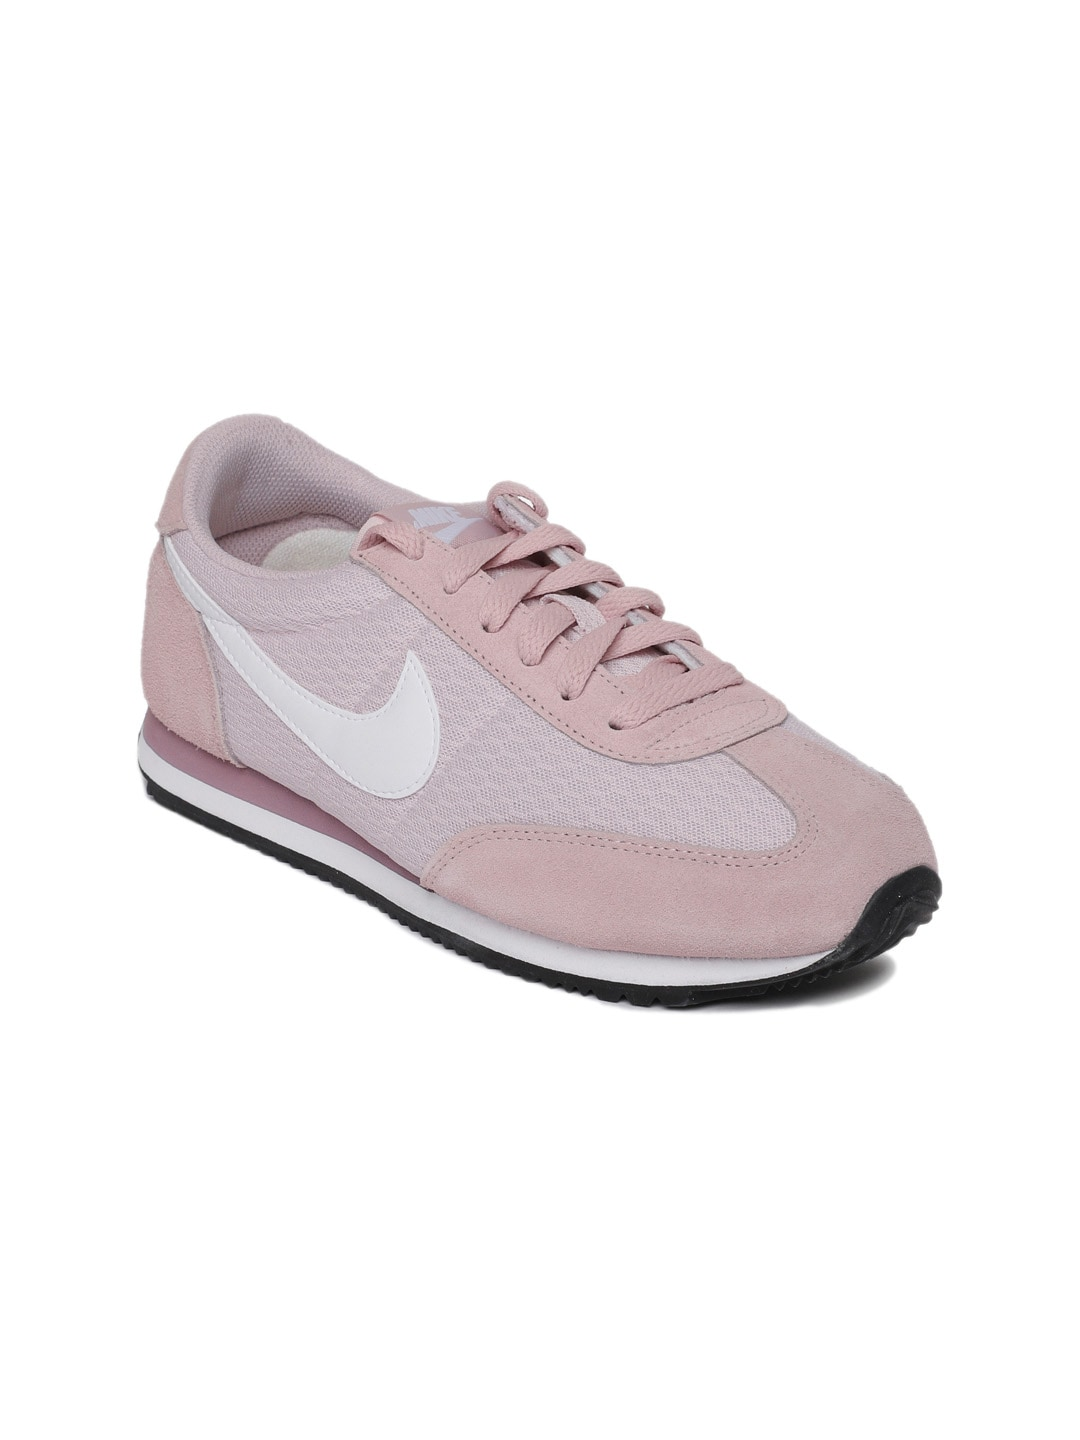 d60a18dce4ac Nike Sports Shoe For Women Shoes - Buy Nike Sports Shoe For Women Shoes  online in India